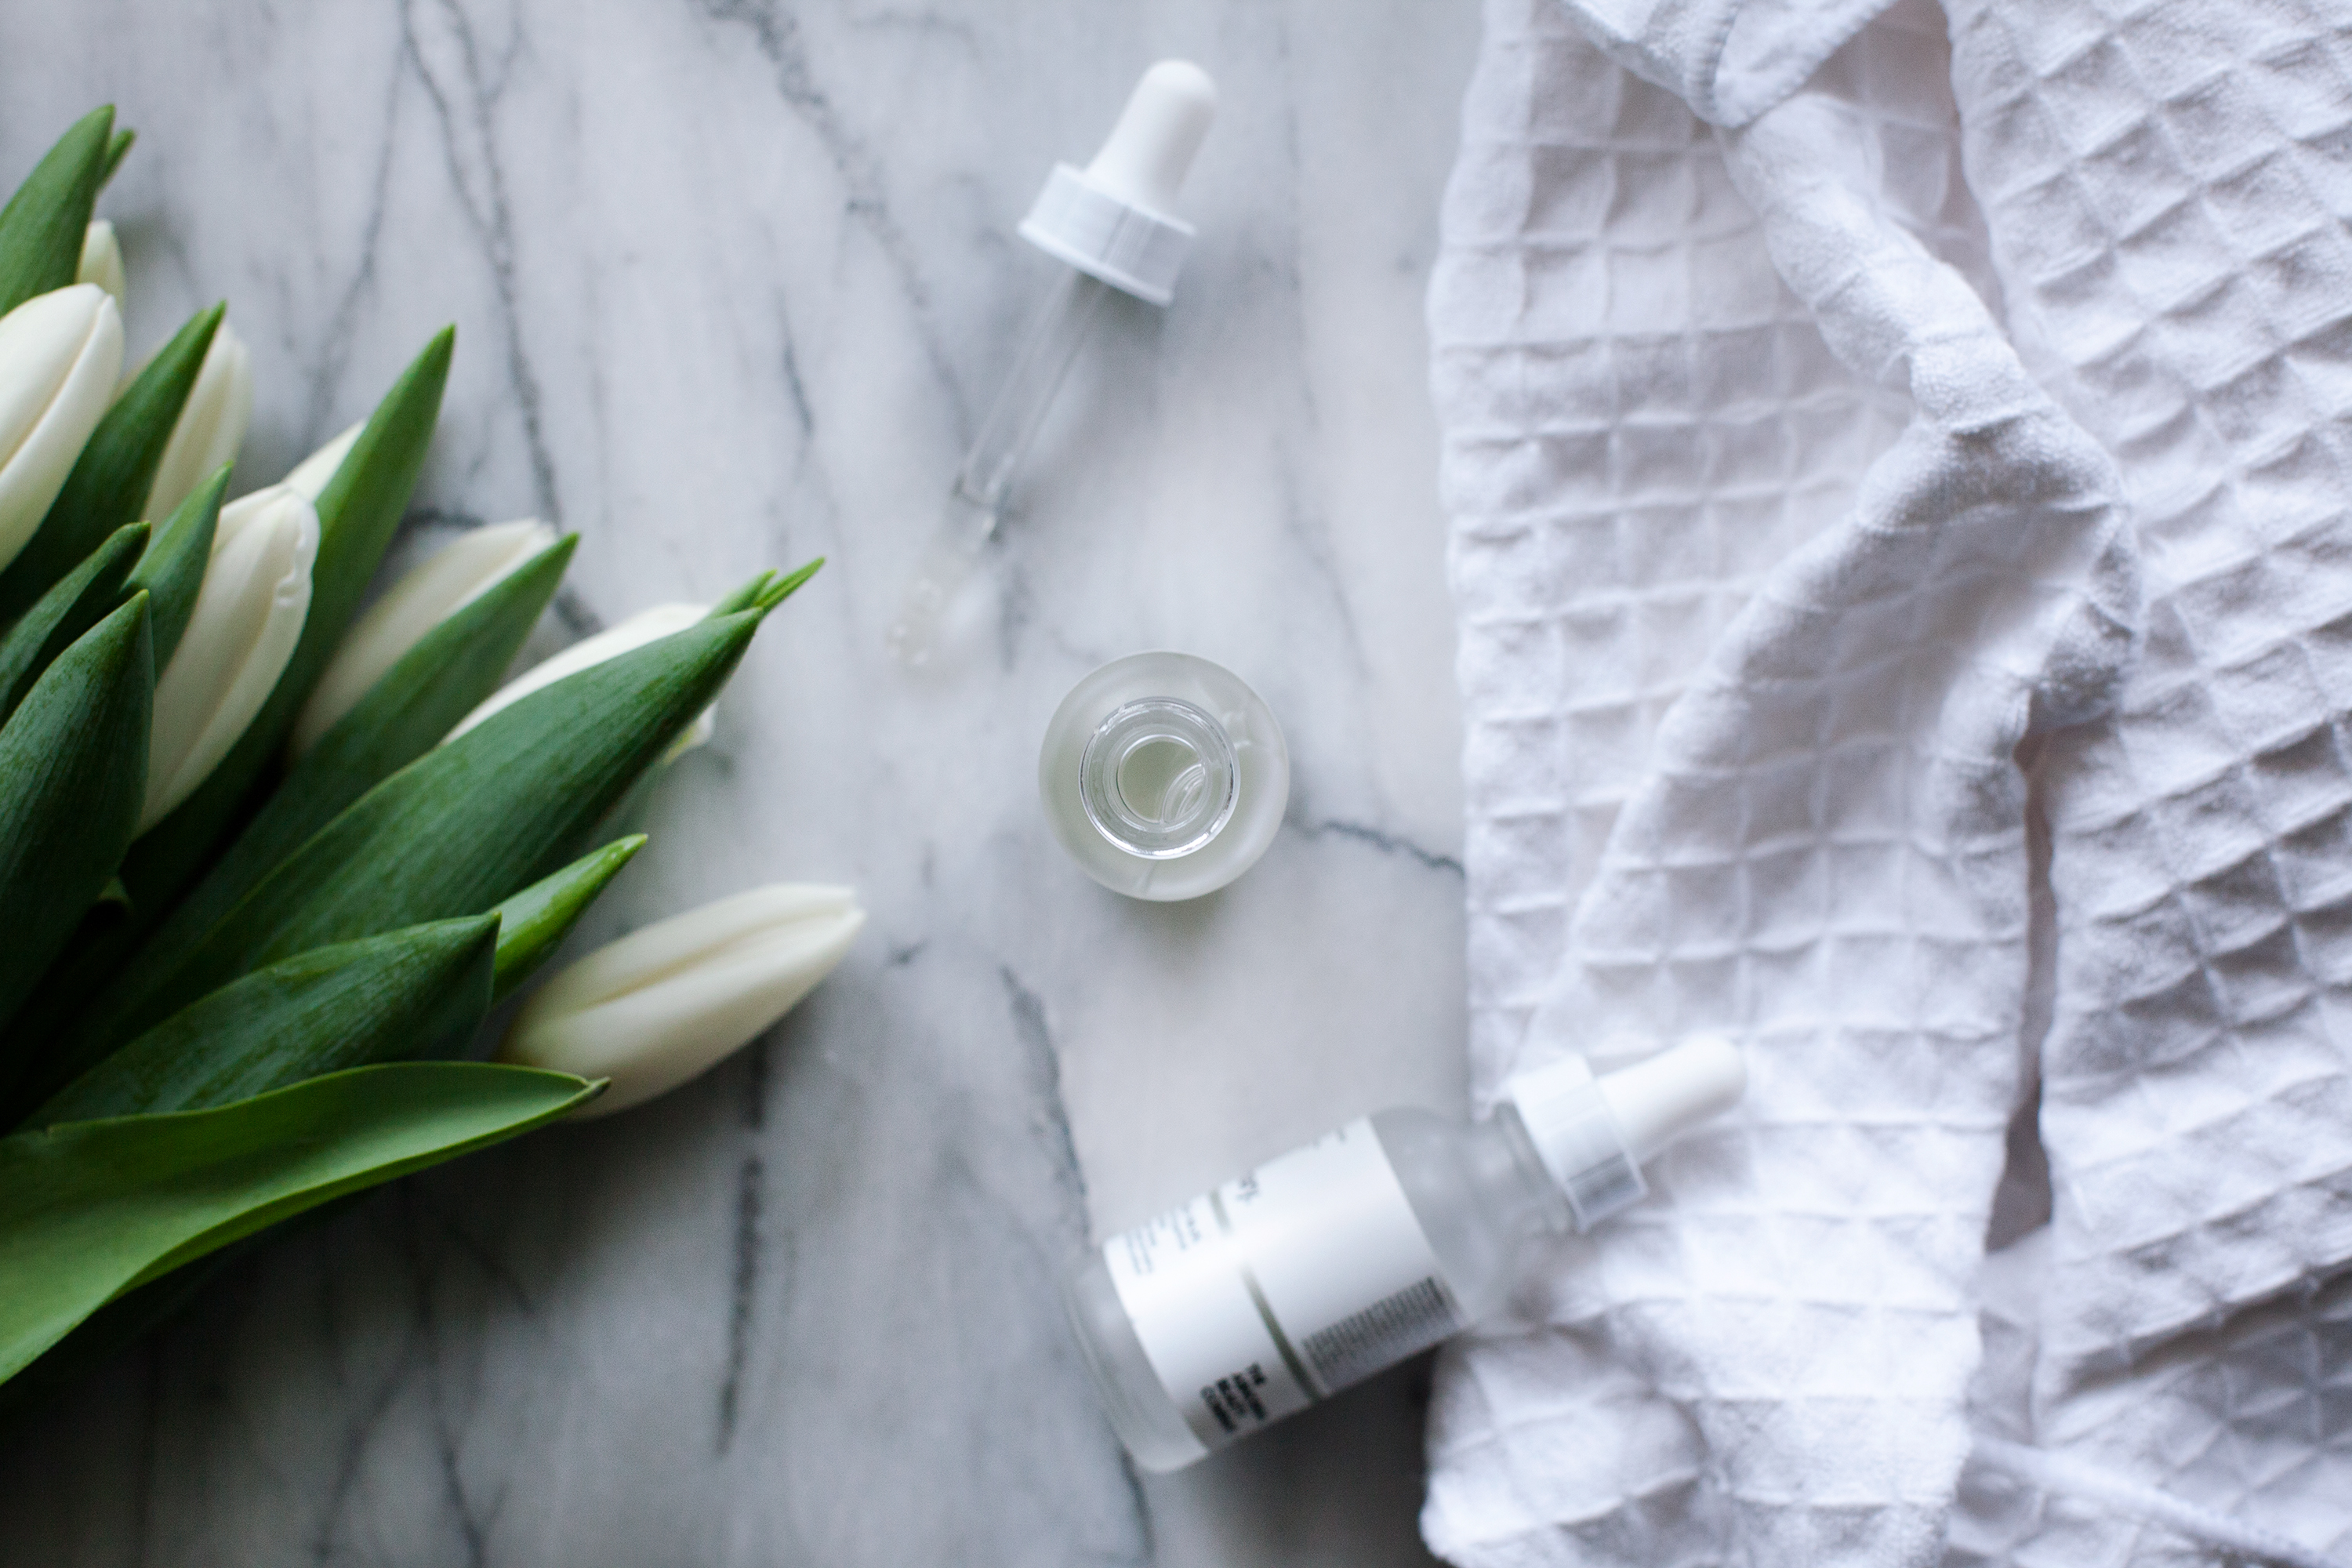 the ordinary hyaluronic acid dropper bottle